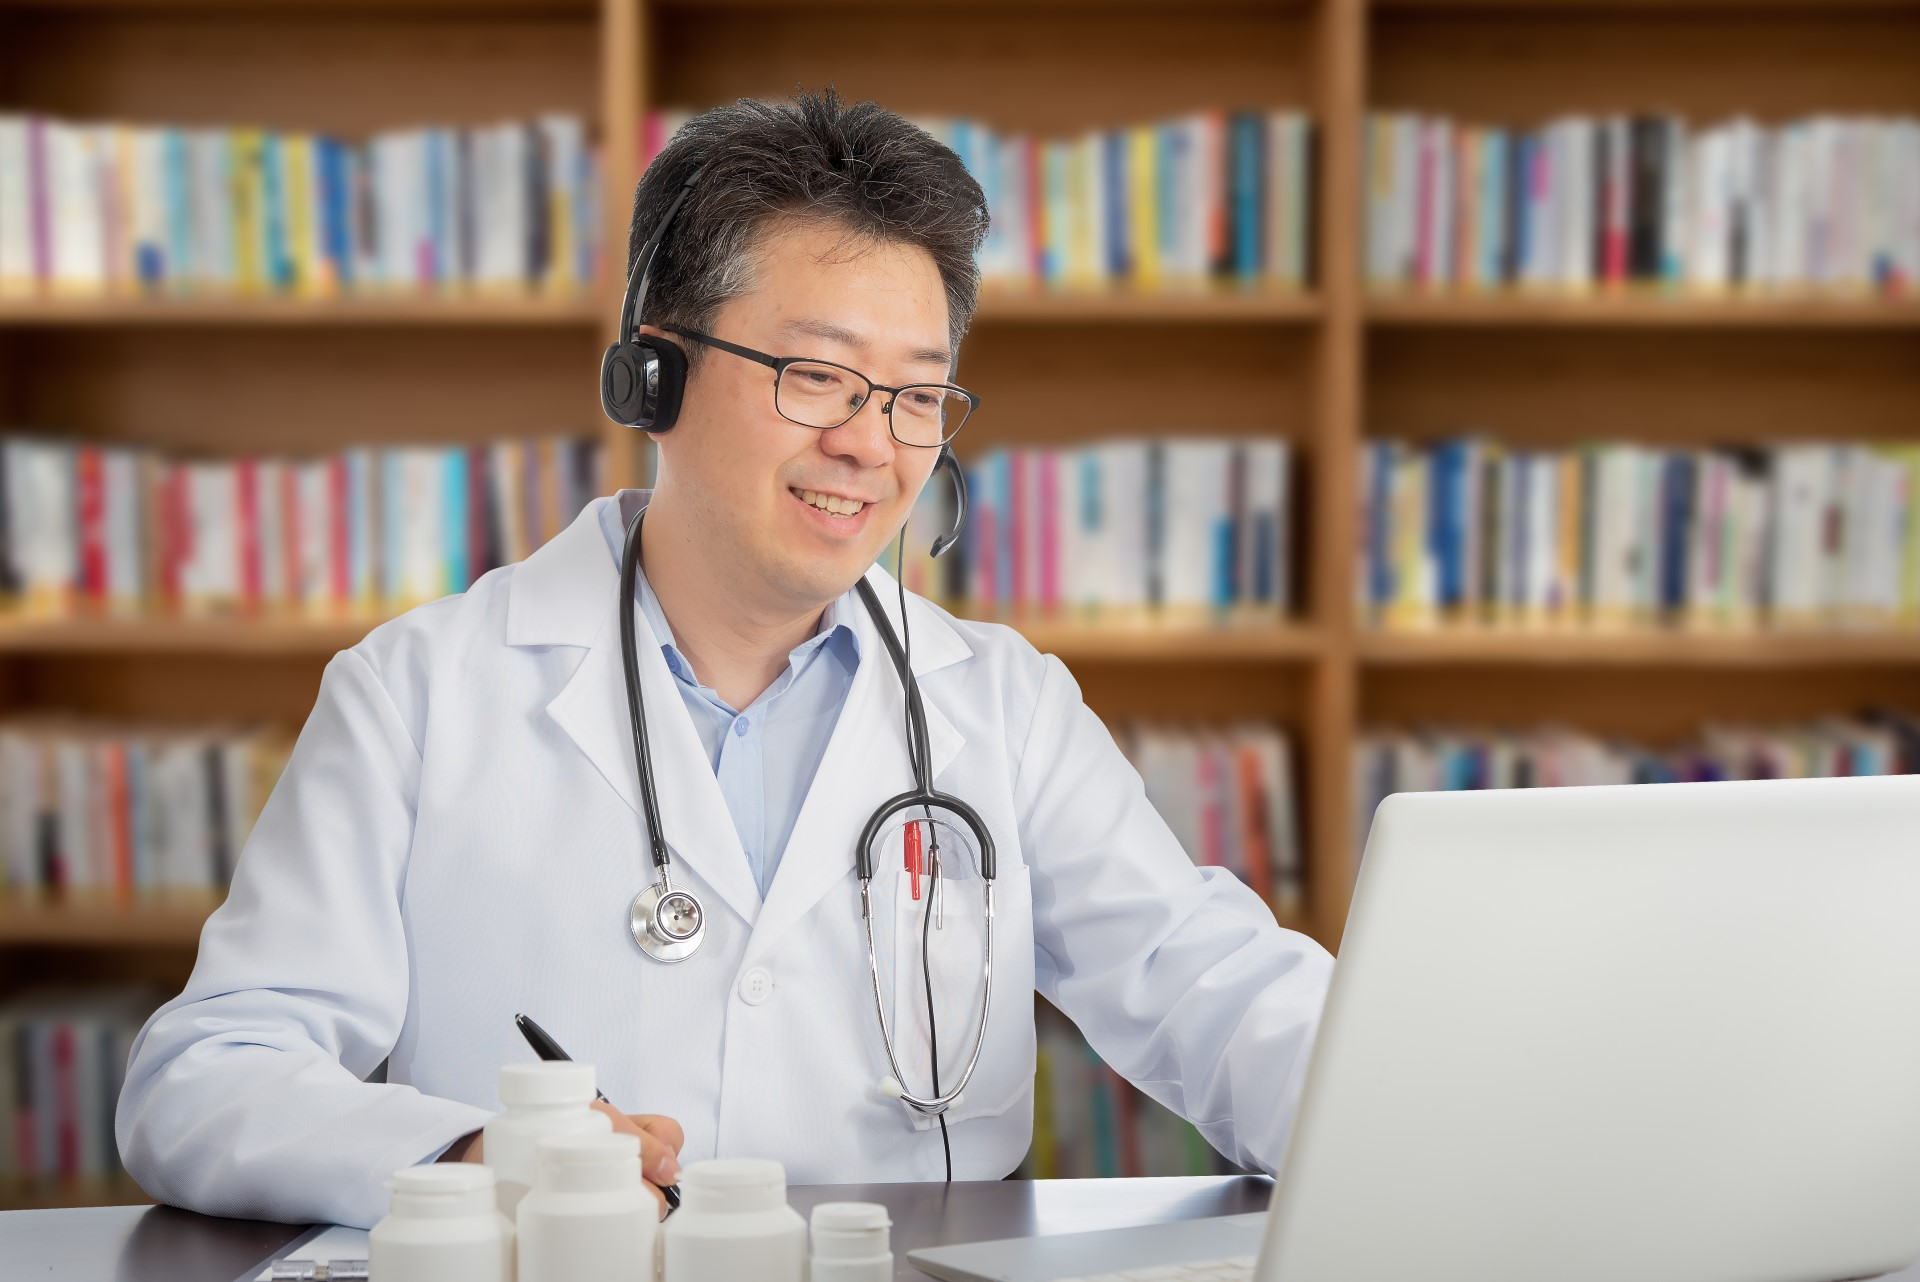 Telehealth And The Pandemic